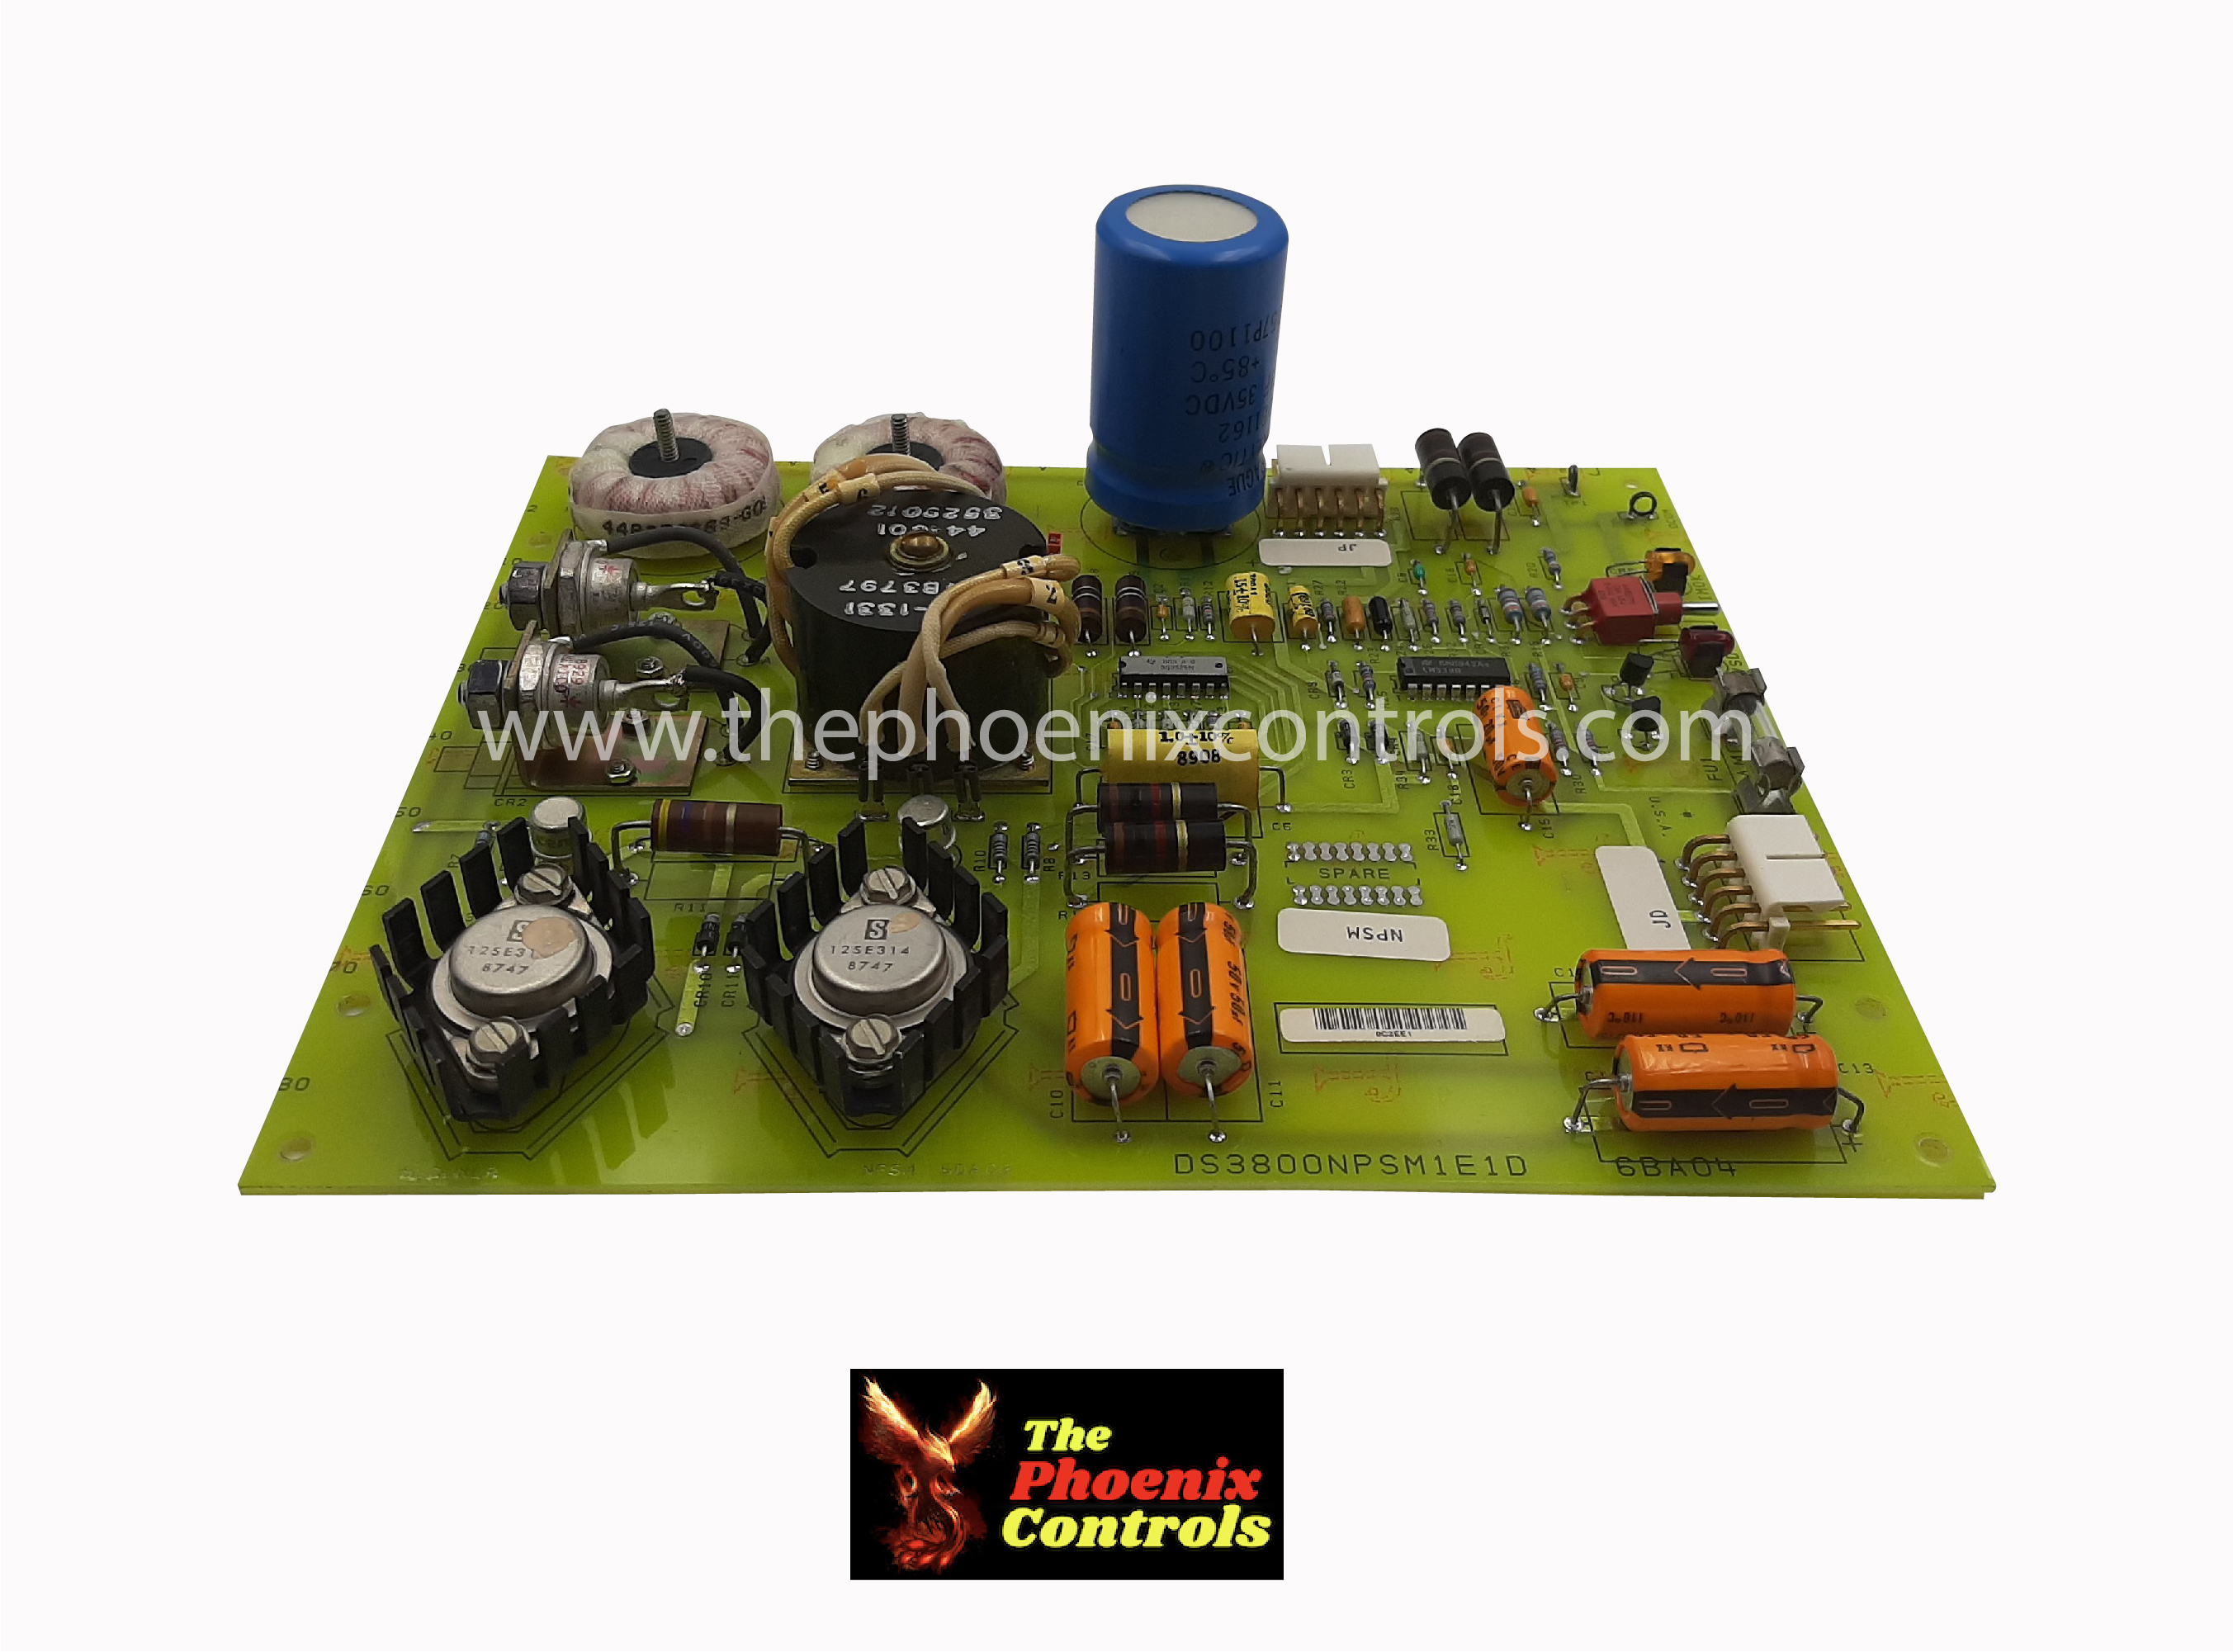 DS3800NPSM - Power Supply Panel - Refurbished